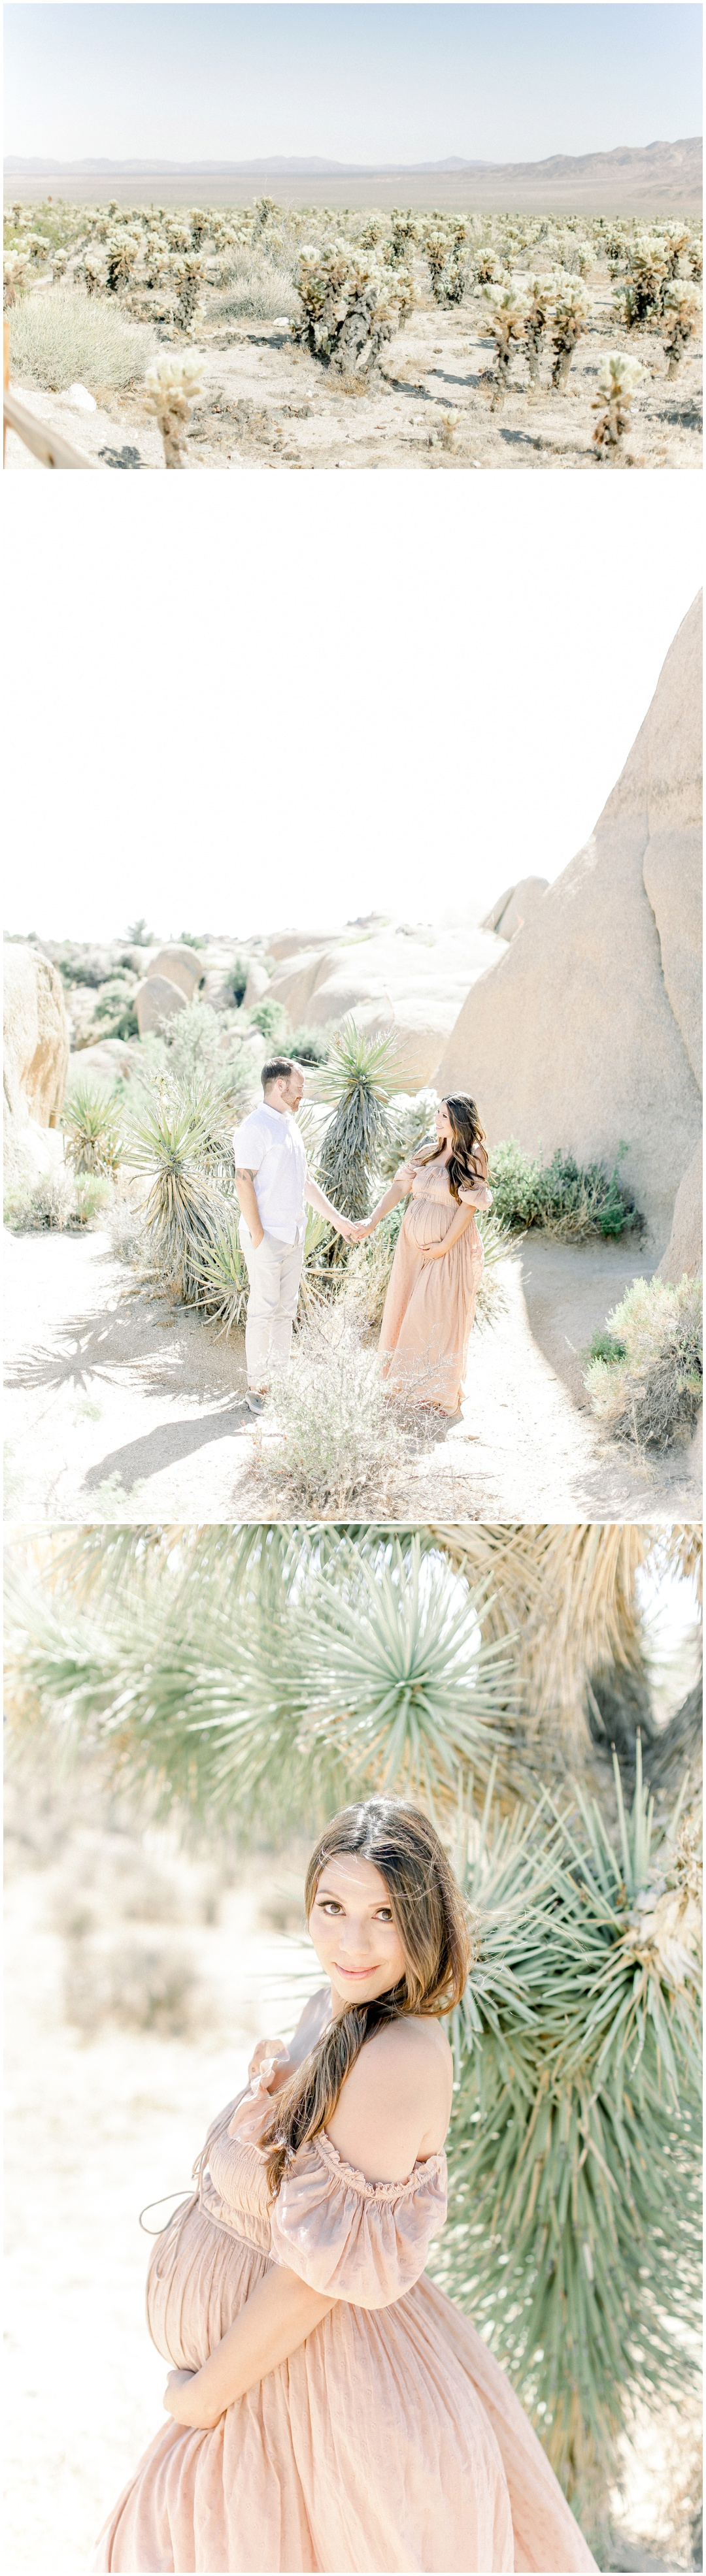 Newport_Beach_Joshua_Tree_Maternity_Photos_Session_Leliani_Hailey_Shane_Hailey_Maternity_Session__4274.jpg